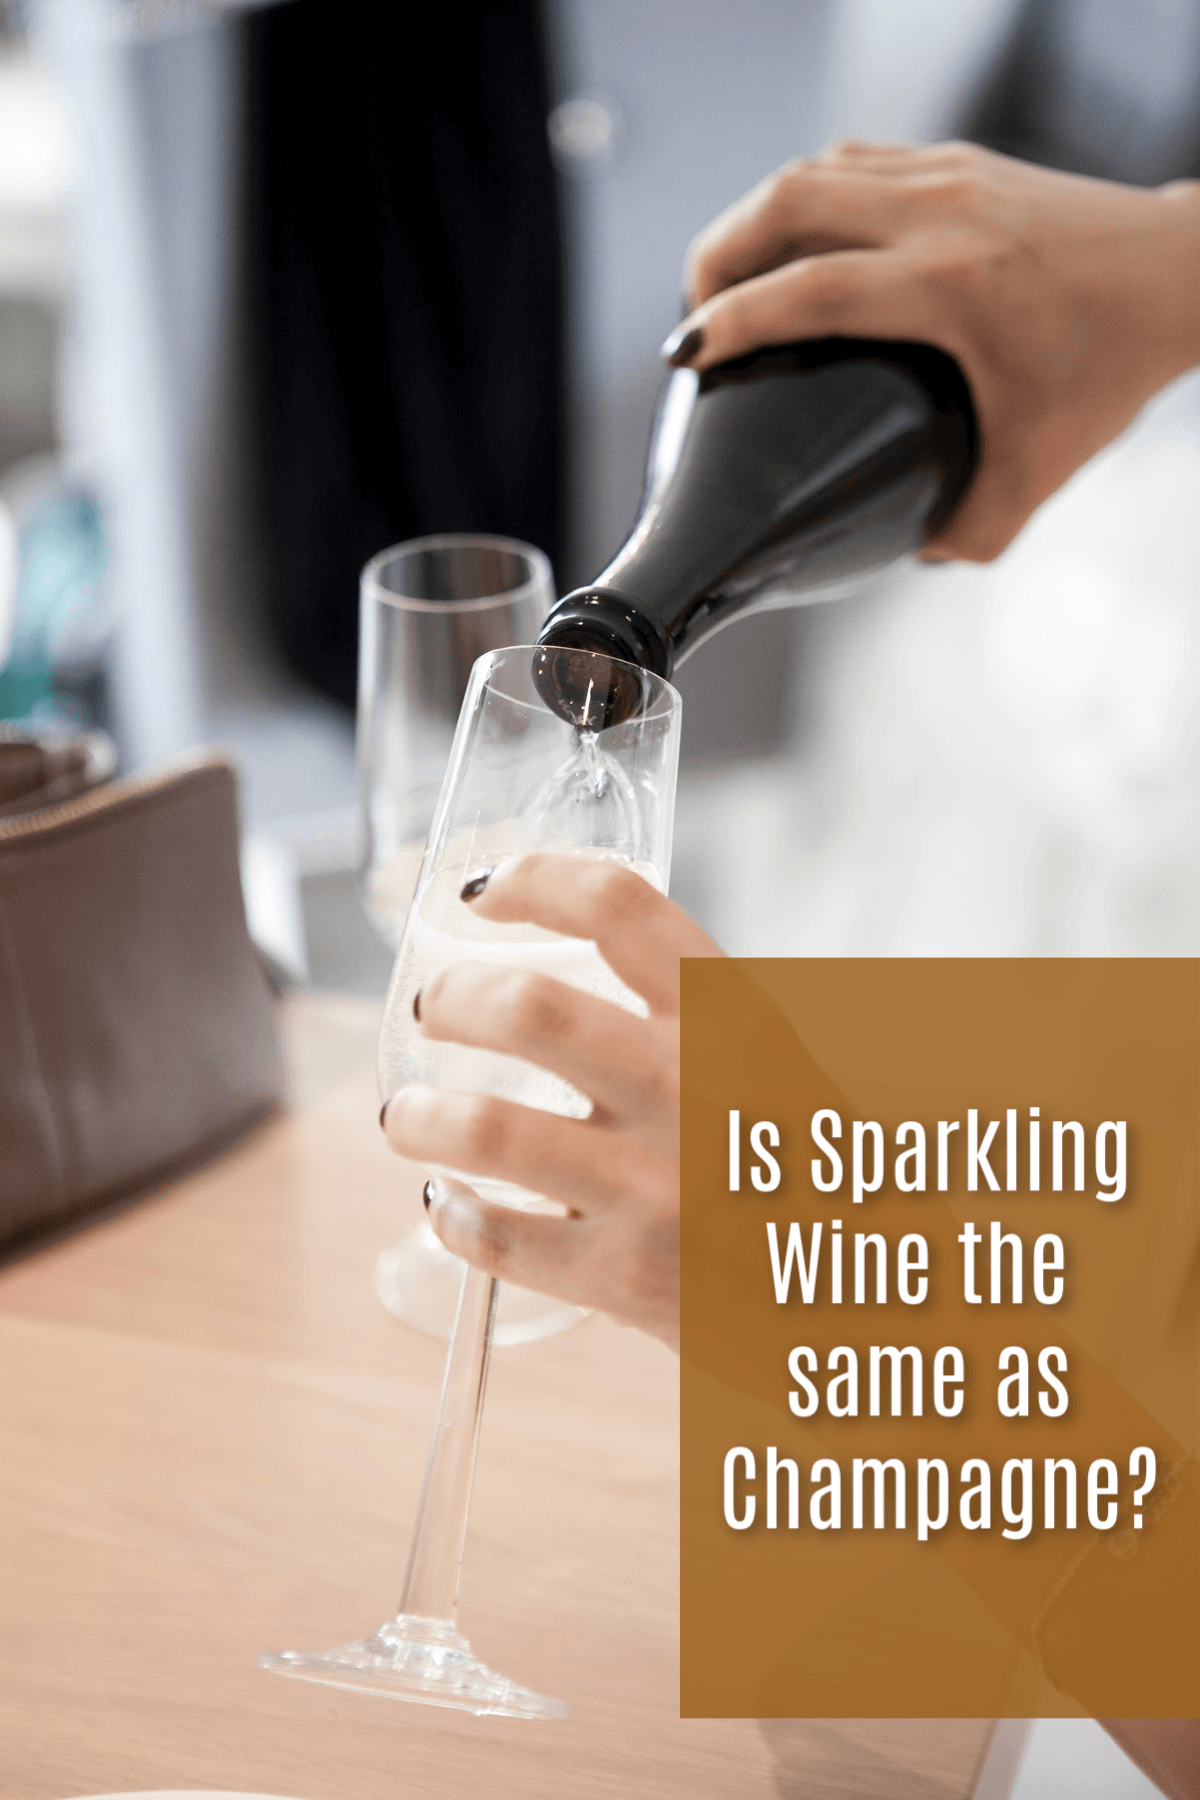 Is Sparkling Wine the same as Champagne?